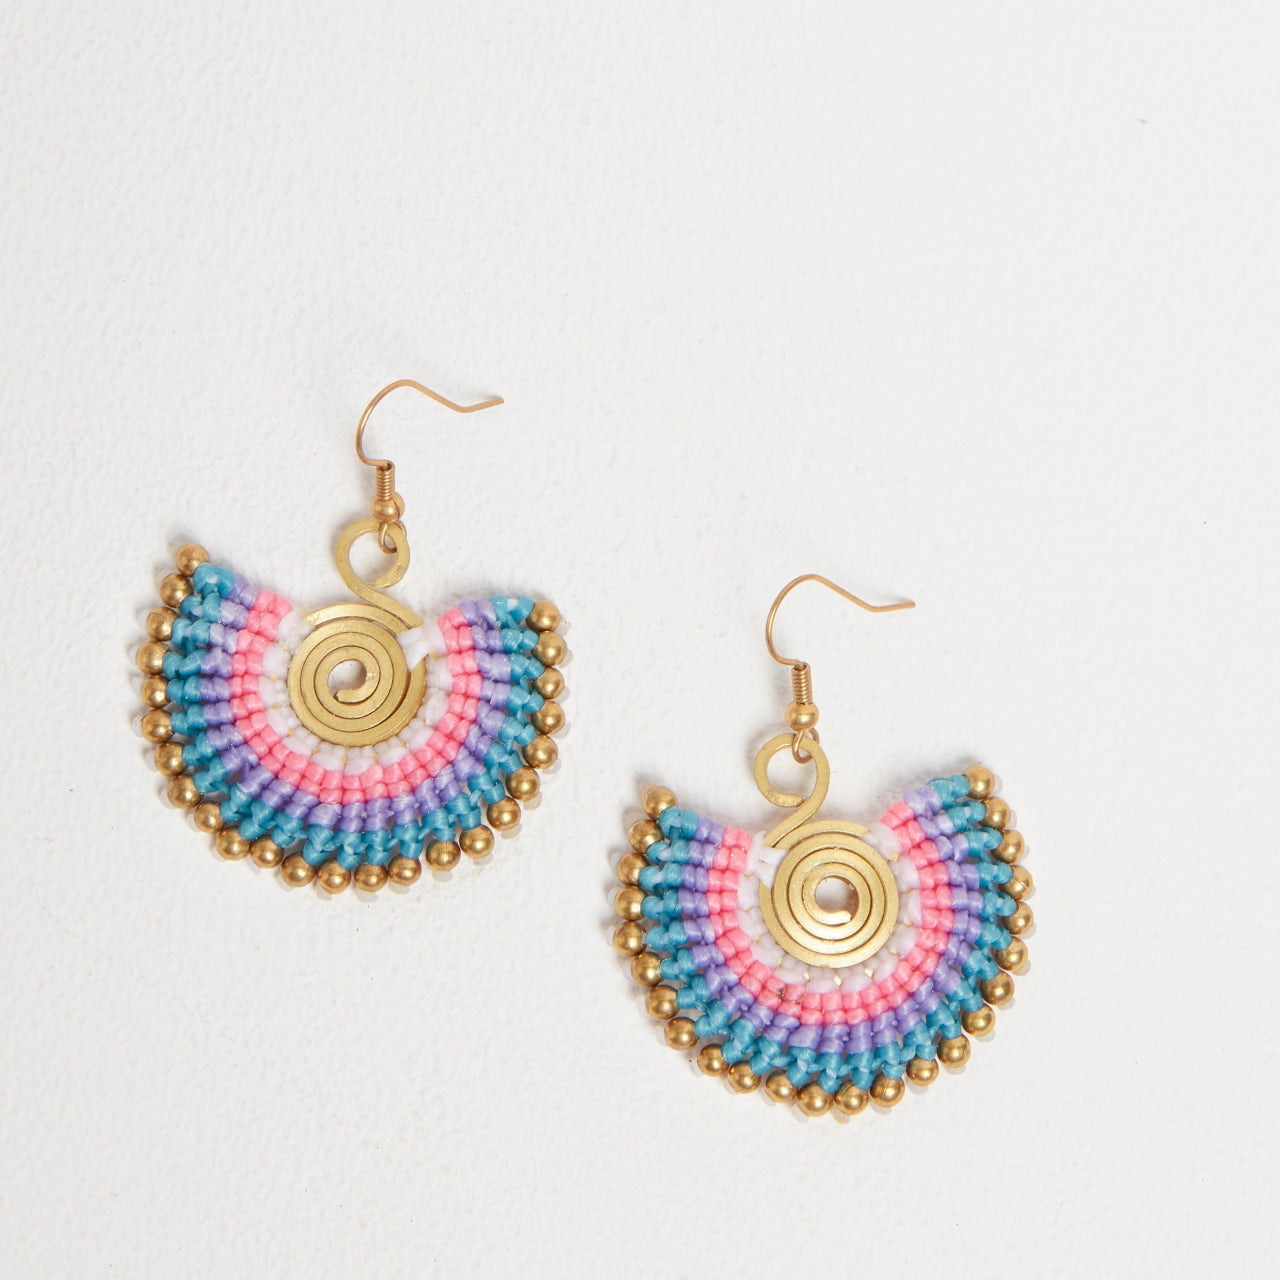 Statement Earrings in Violet Mix